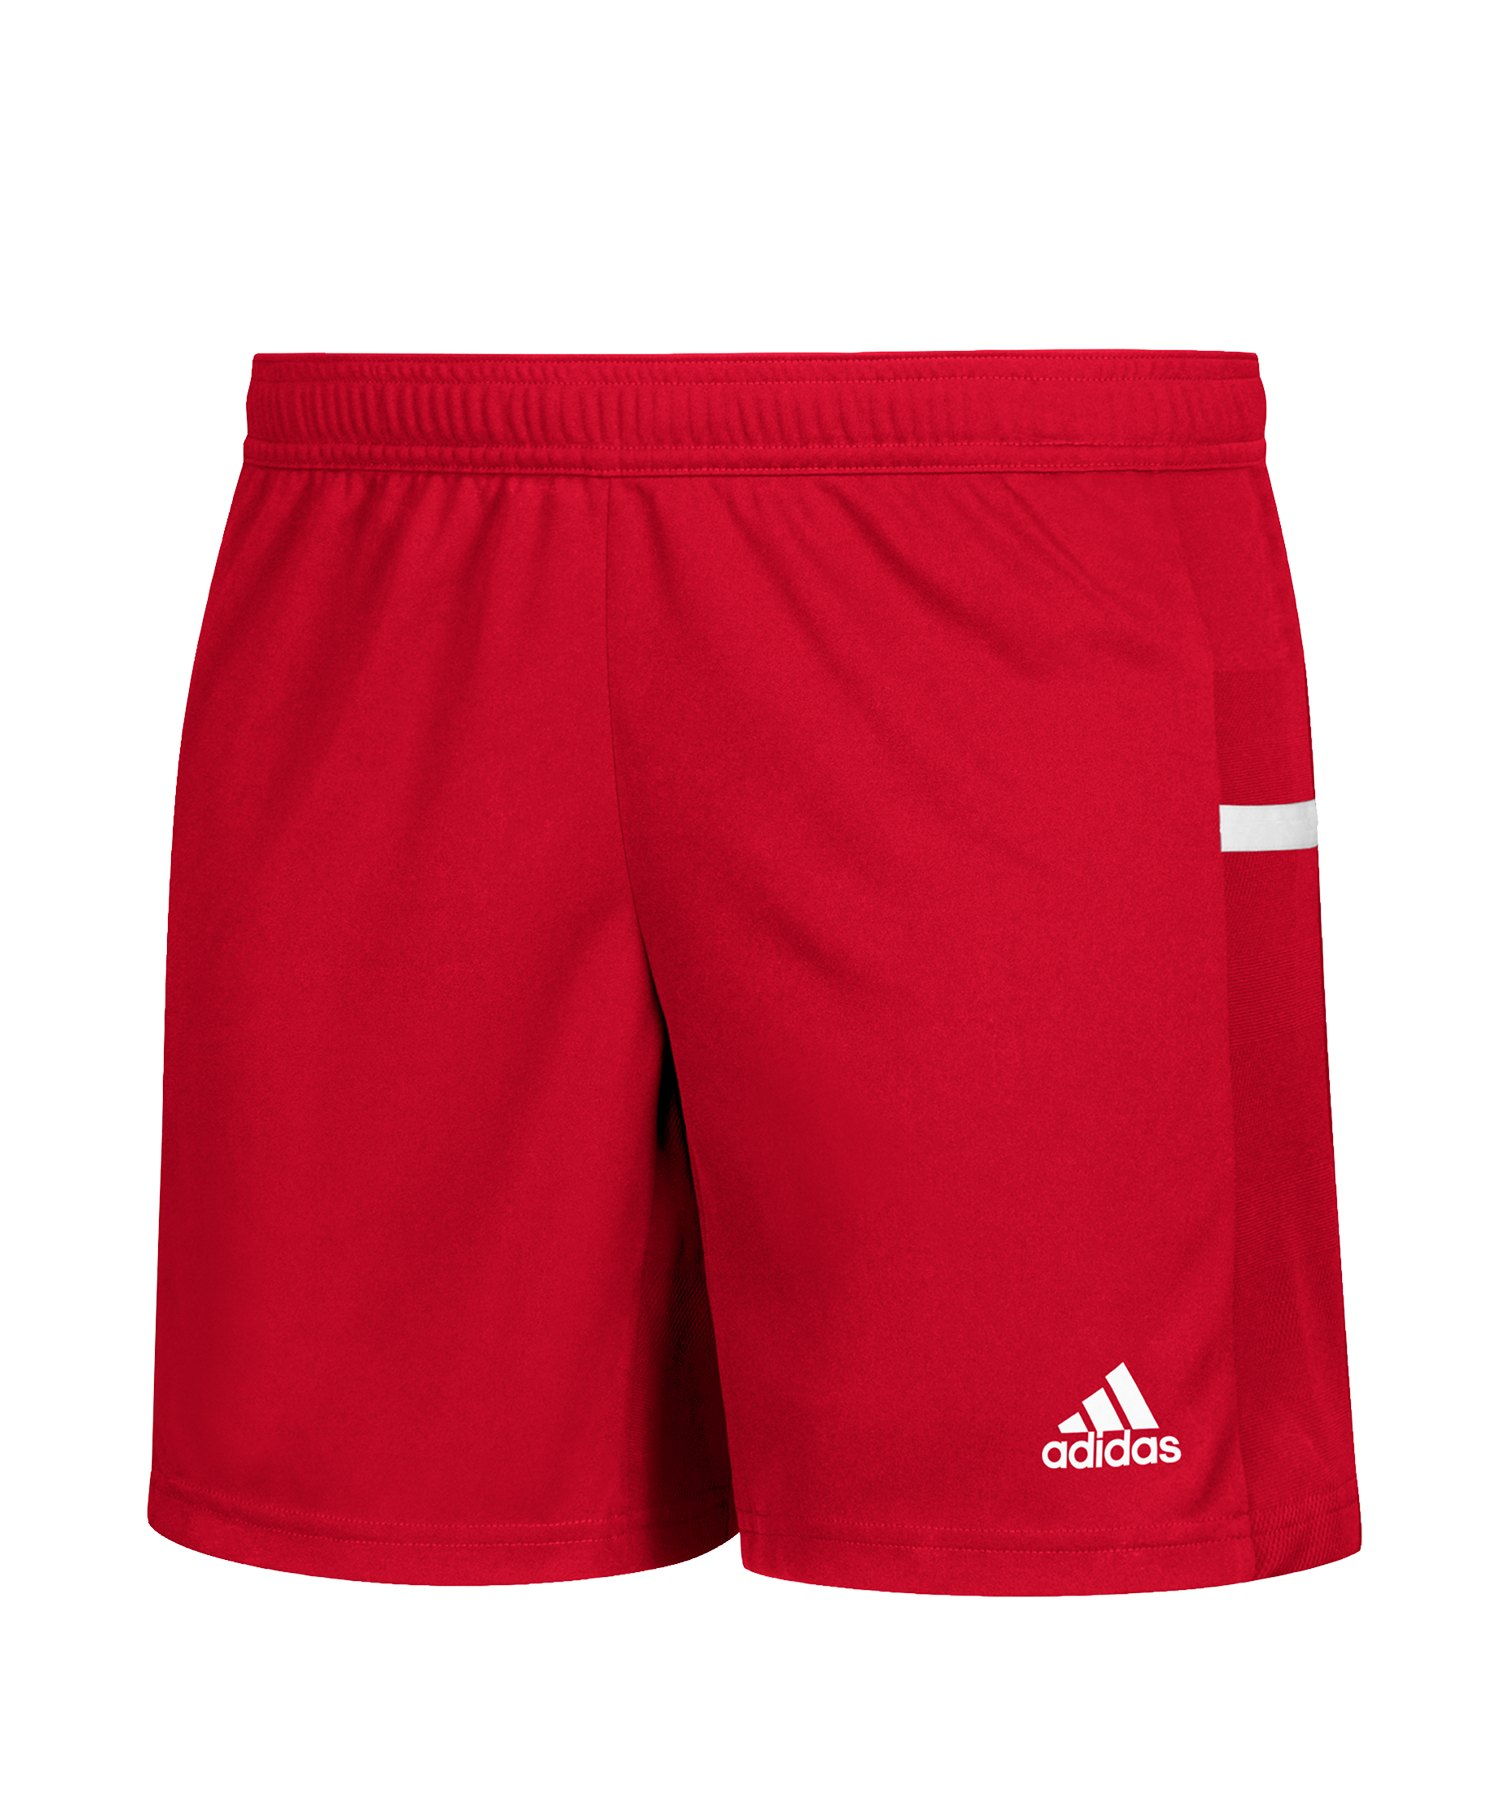 adidas Team 19 Knitted Short Damen Rot Weiss - rot